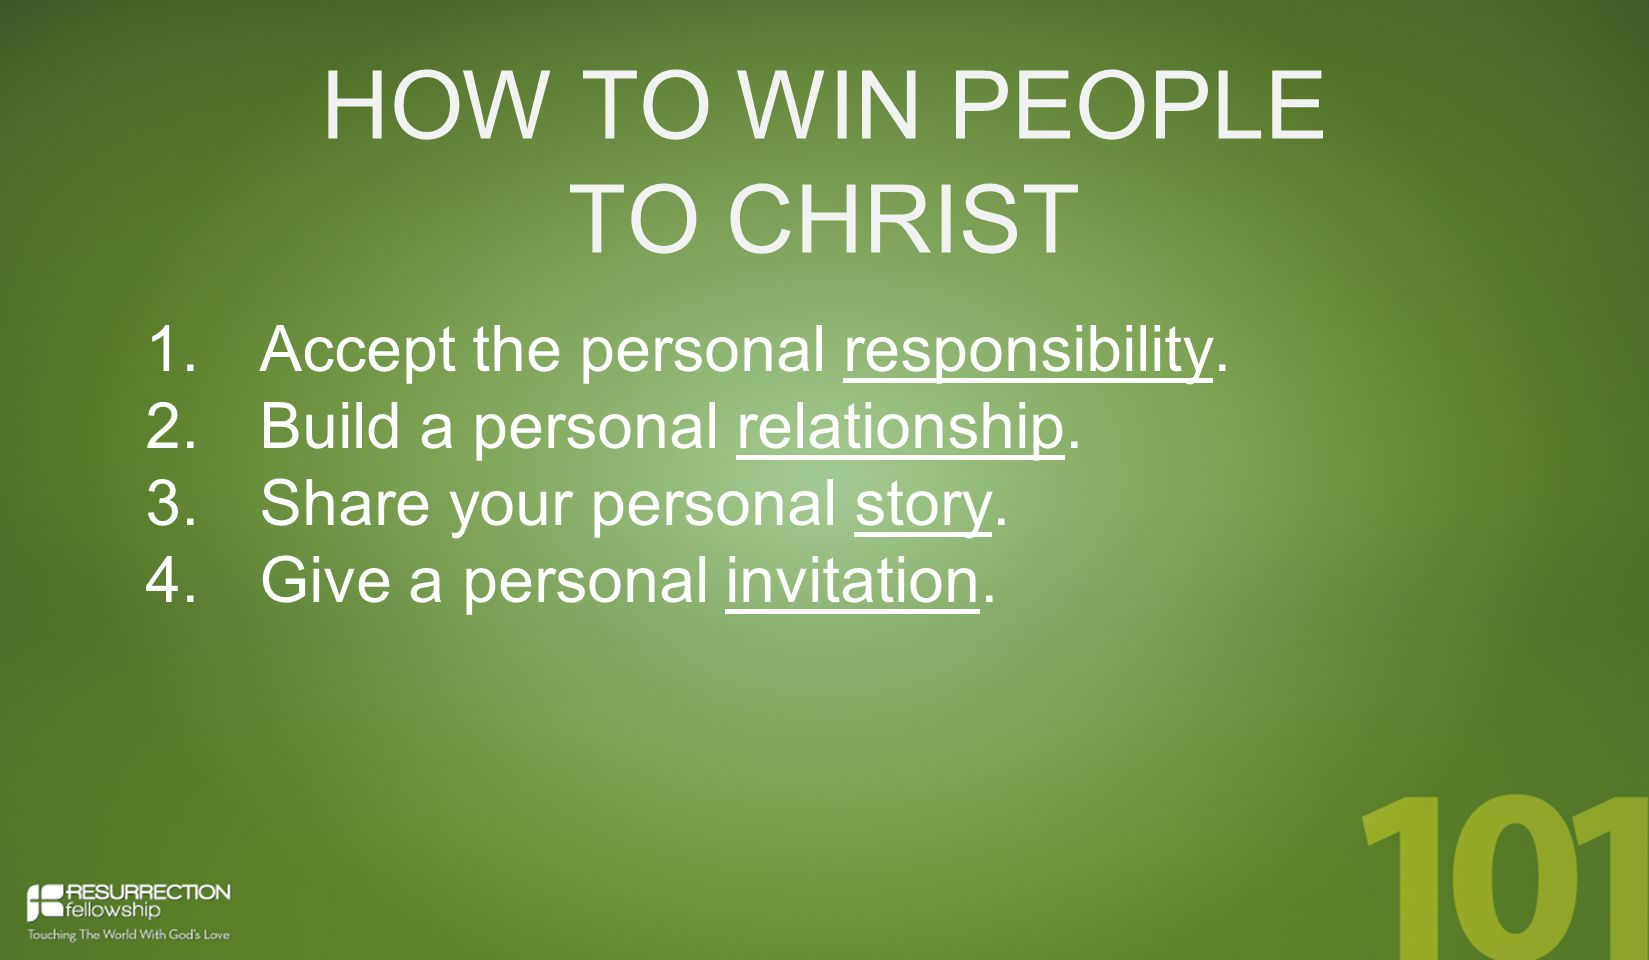 HOW TO WIN PEOPLE TO CHRIST 1. Accept the personal responsibility.